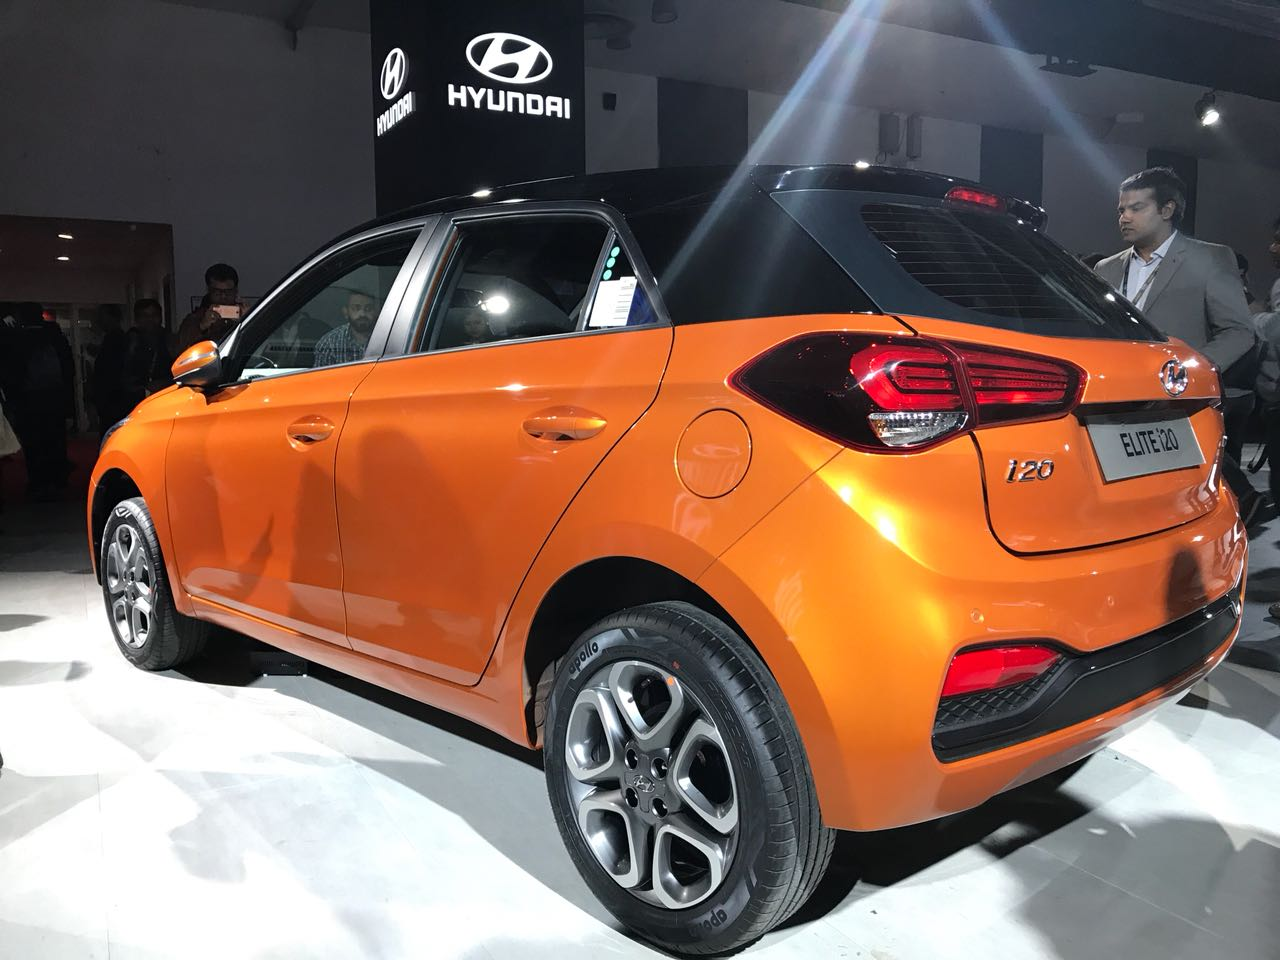 New 2018 Hyundai Elite I20 Launched At Auto Expo 2018 Prices 5 34